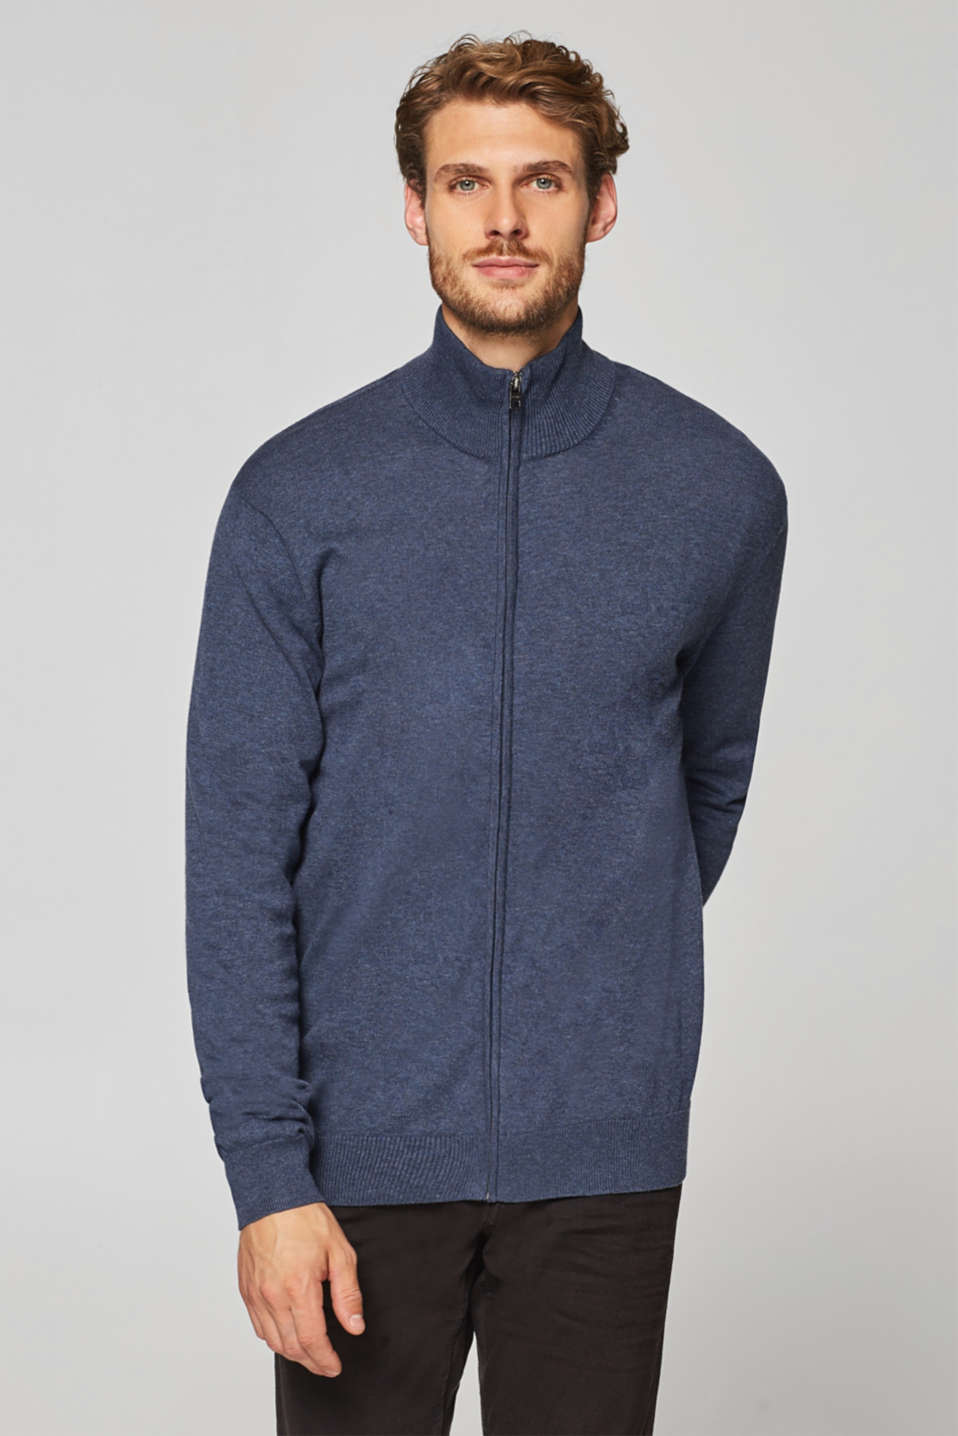 Esprit - Fine knit cardigan made from 100% cotton